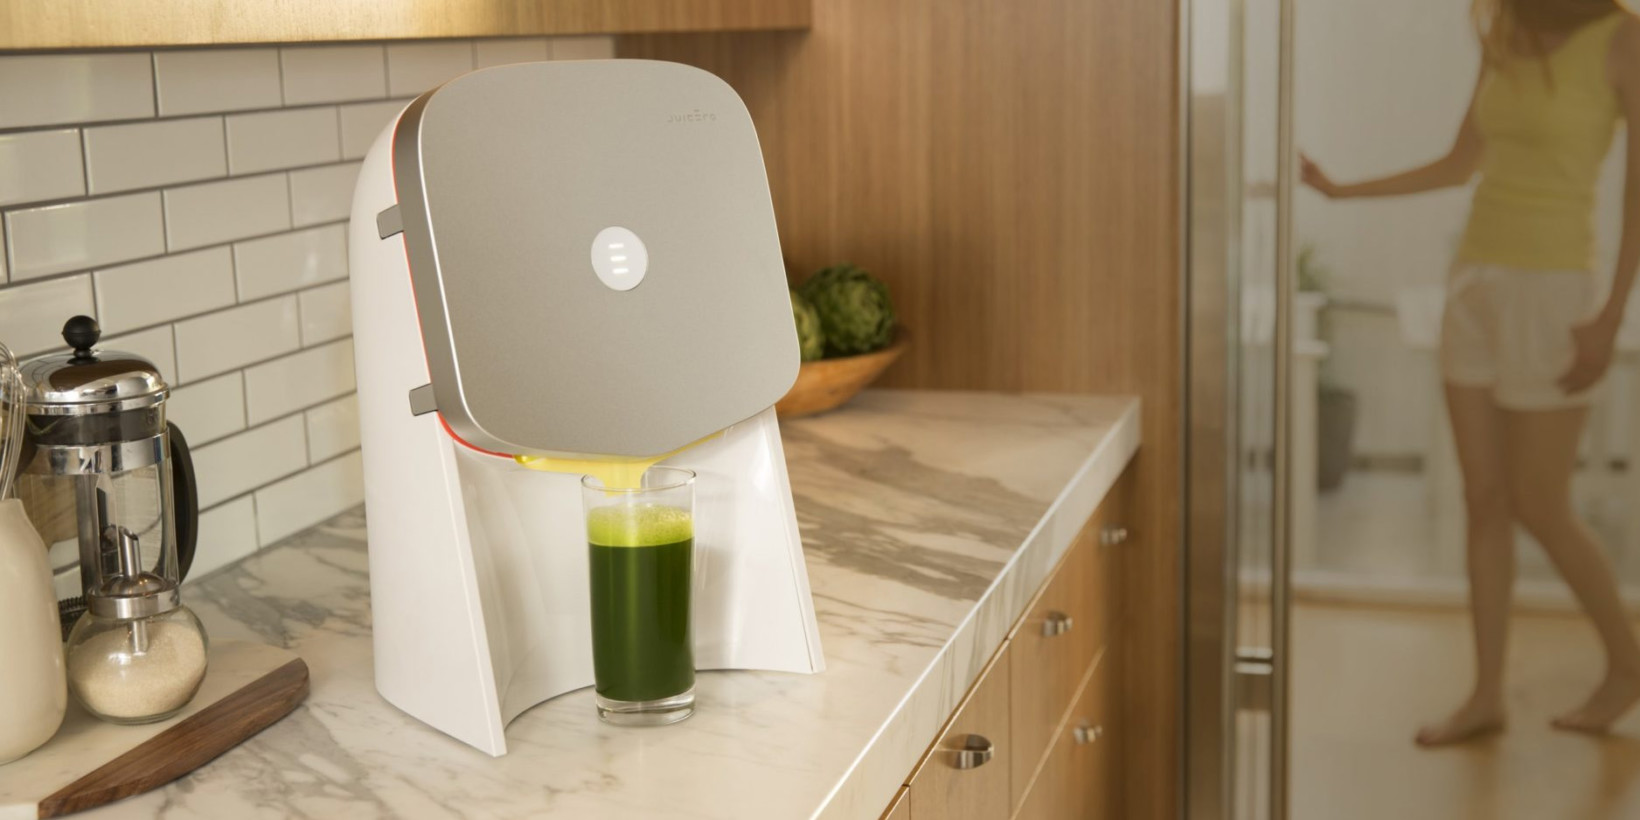 This $400 Juicer That Does Nothing But Squeeze Juice Packs Is Peak Silicon Valley photo